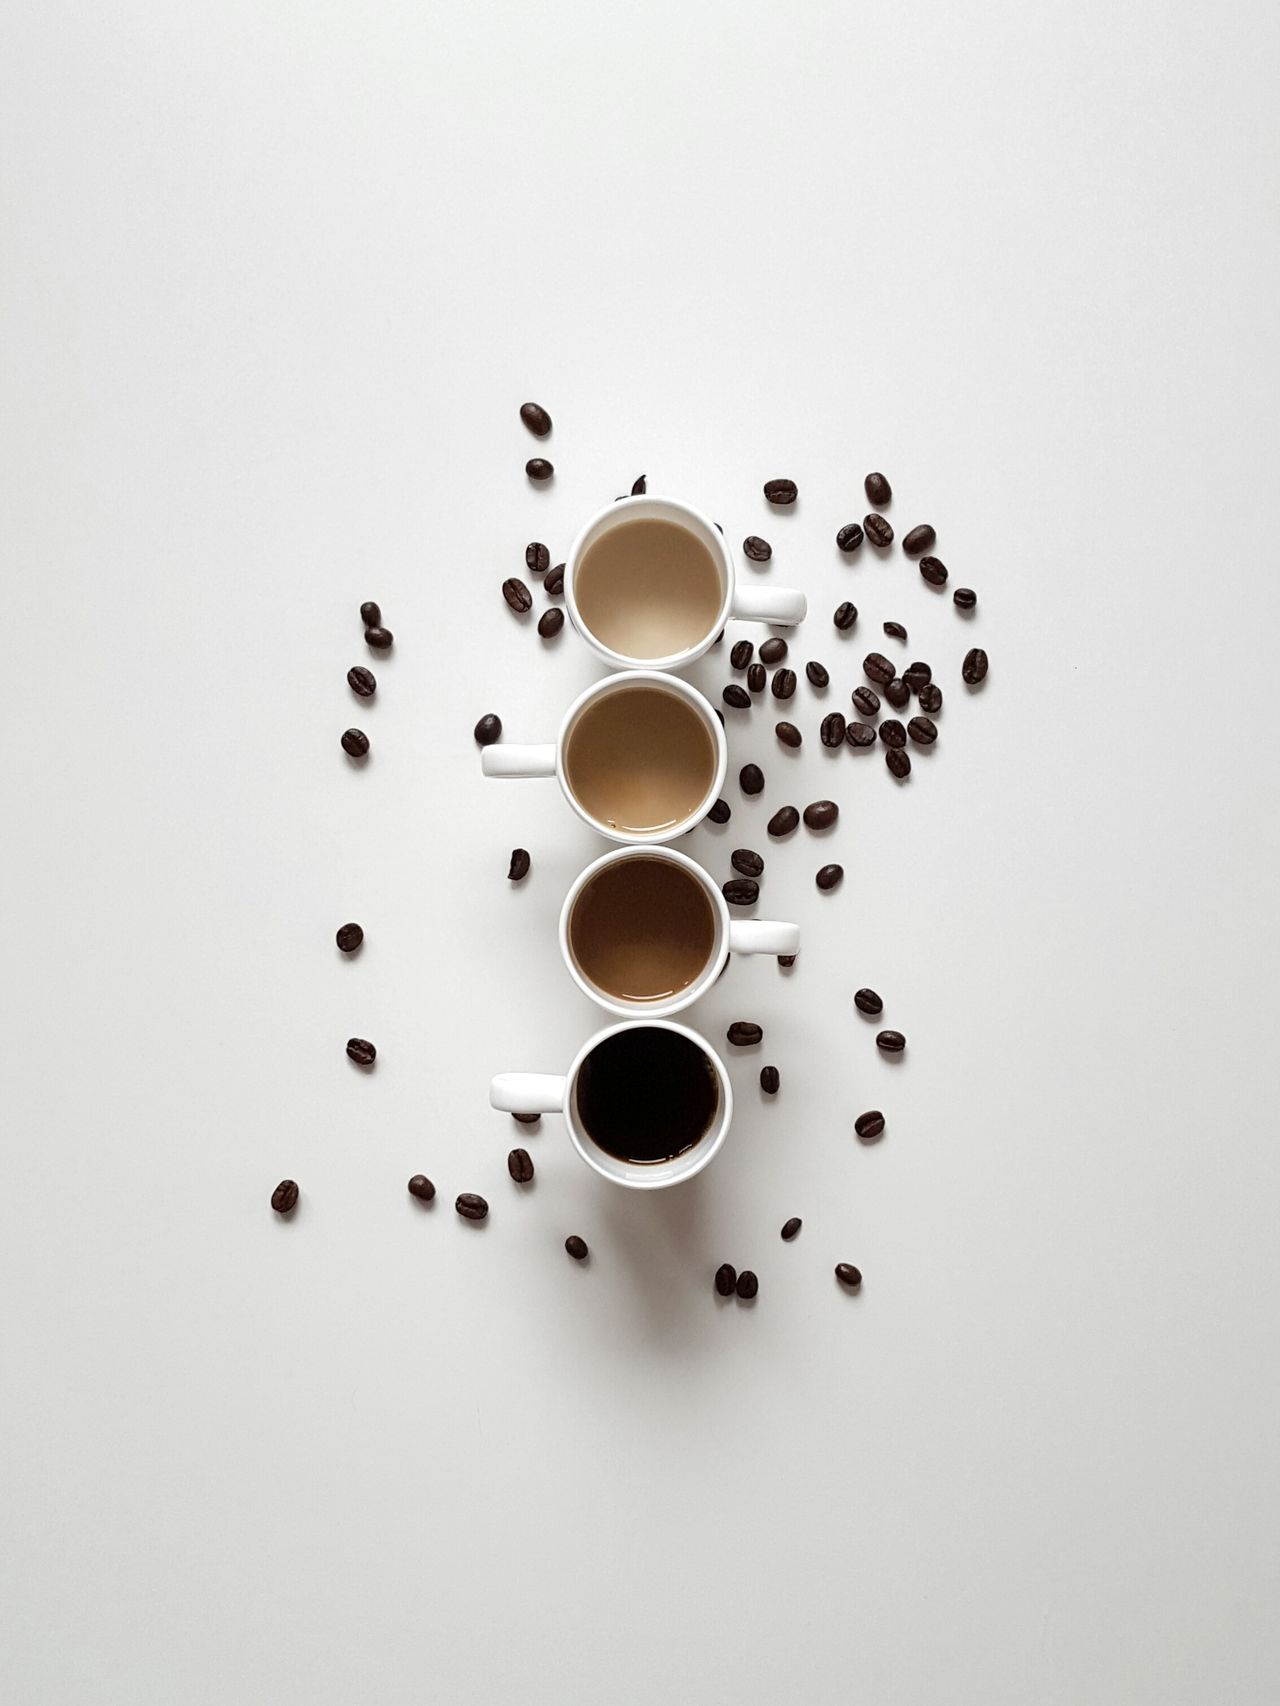 Different shades of coffee Coffee Kickstart Liquid Lunch Fresh Products Caffeine Milk Cups Porcelain  White Background Different Shades Of Brown Coffee Break Delicious Smell Hot Drink Good Morning Coffee Beans Minimalism Barista Energy Boost Espresso Coffee Breakfast Drink Tasty Food